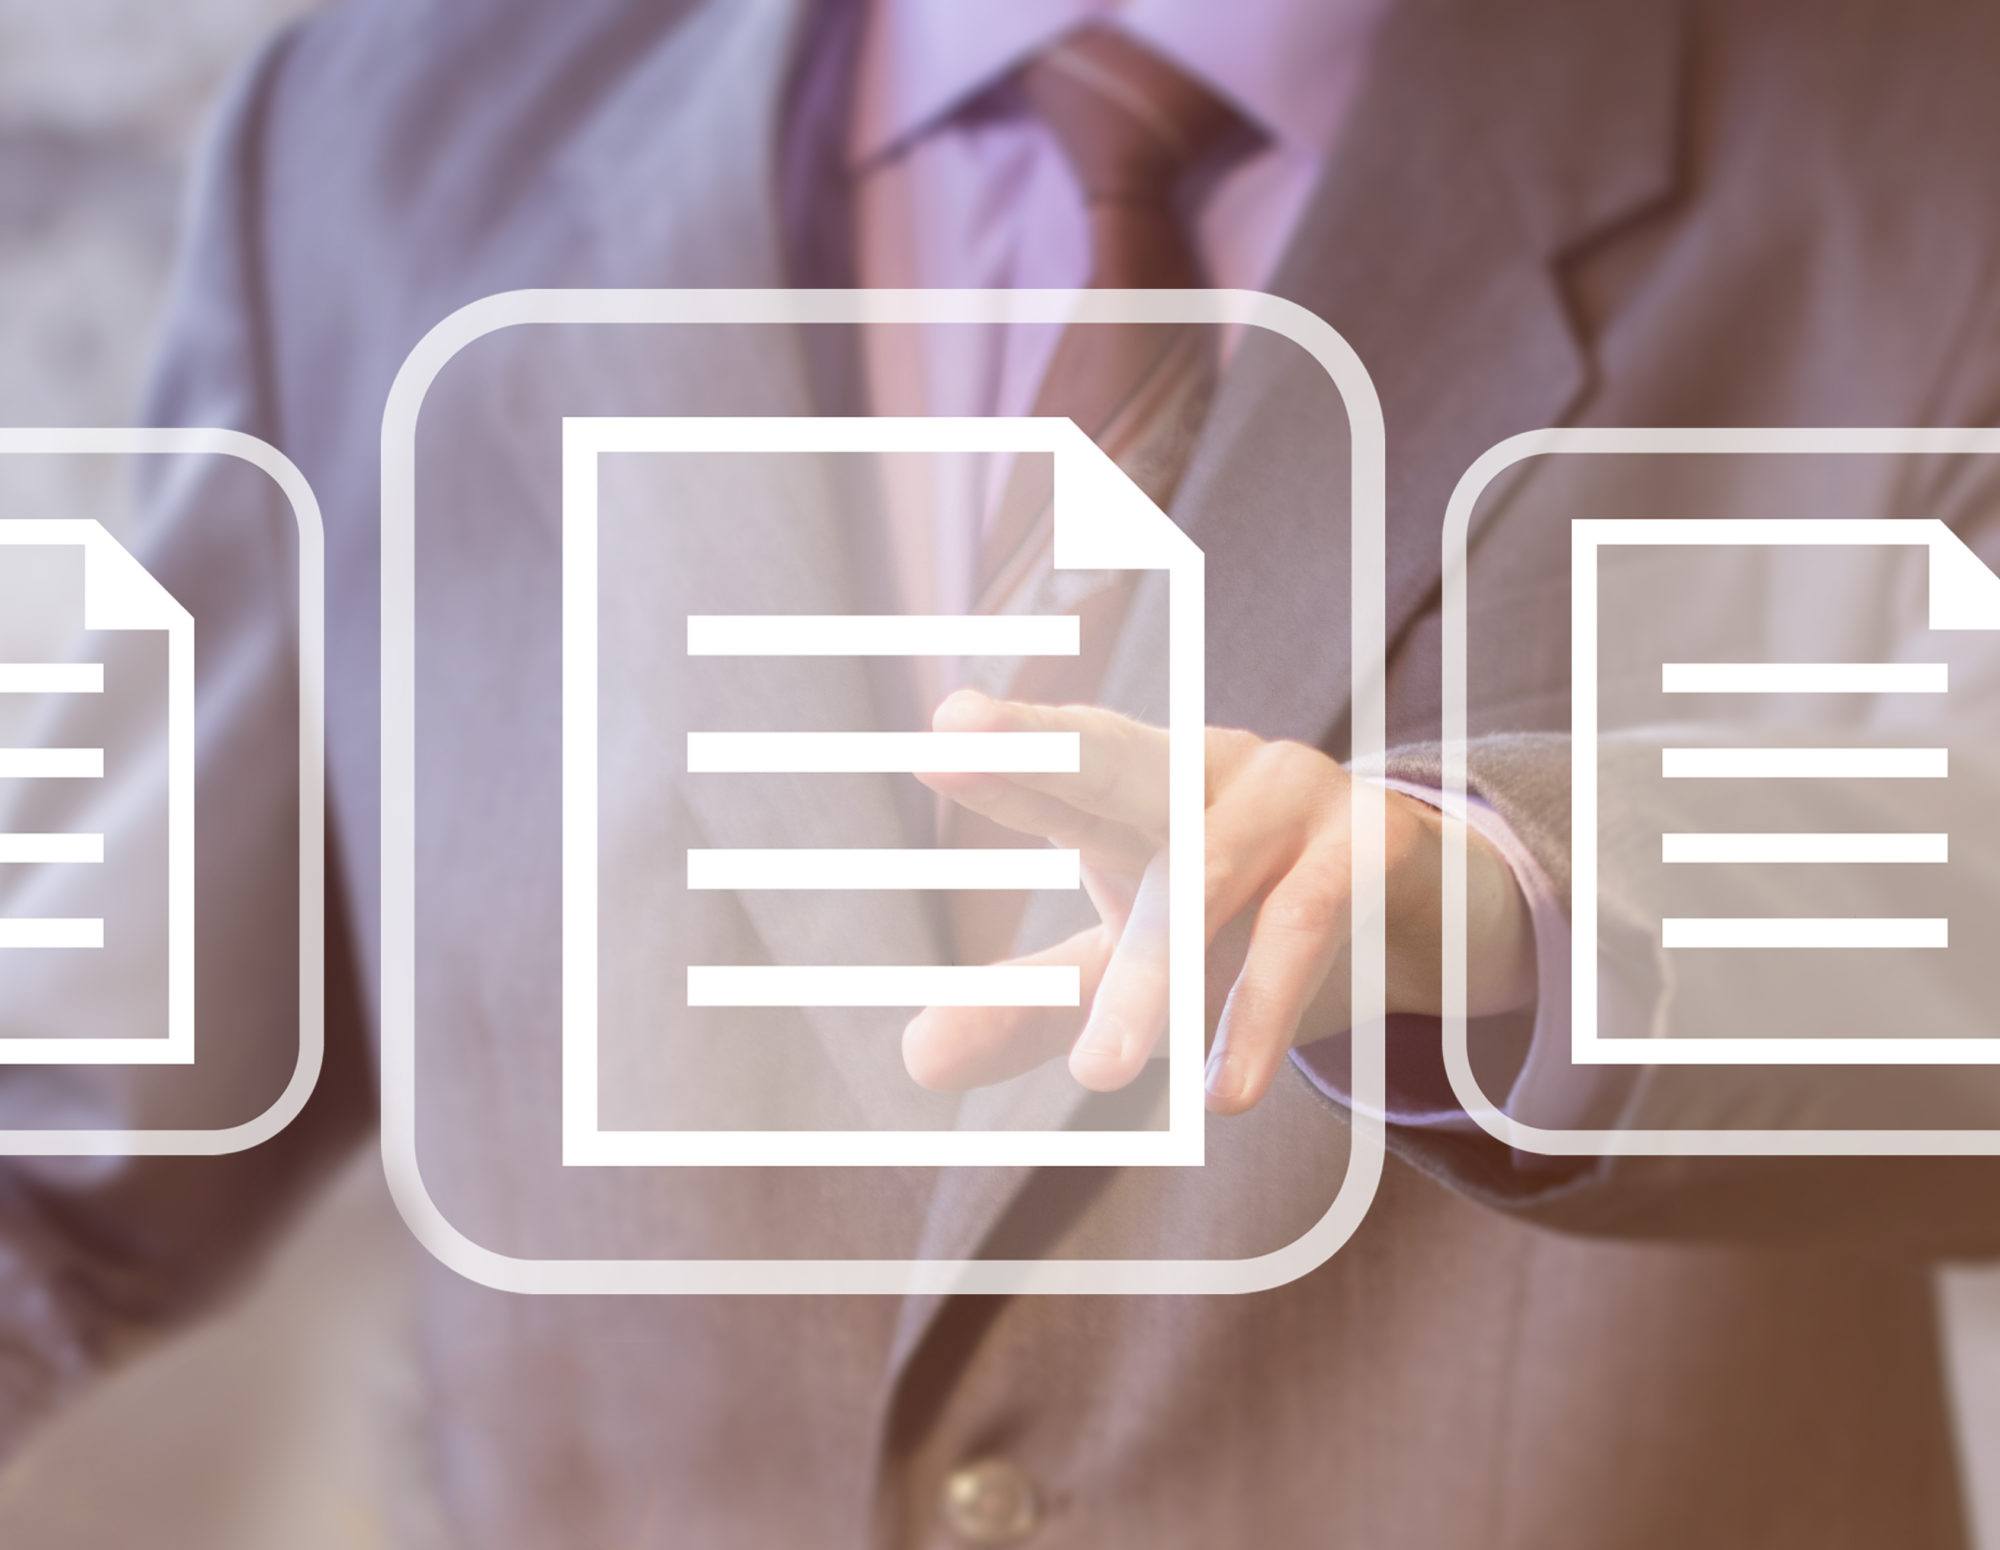 floating document icon in front of a business person